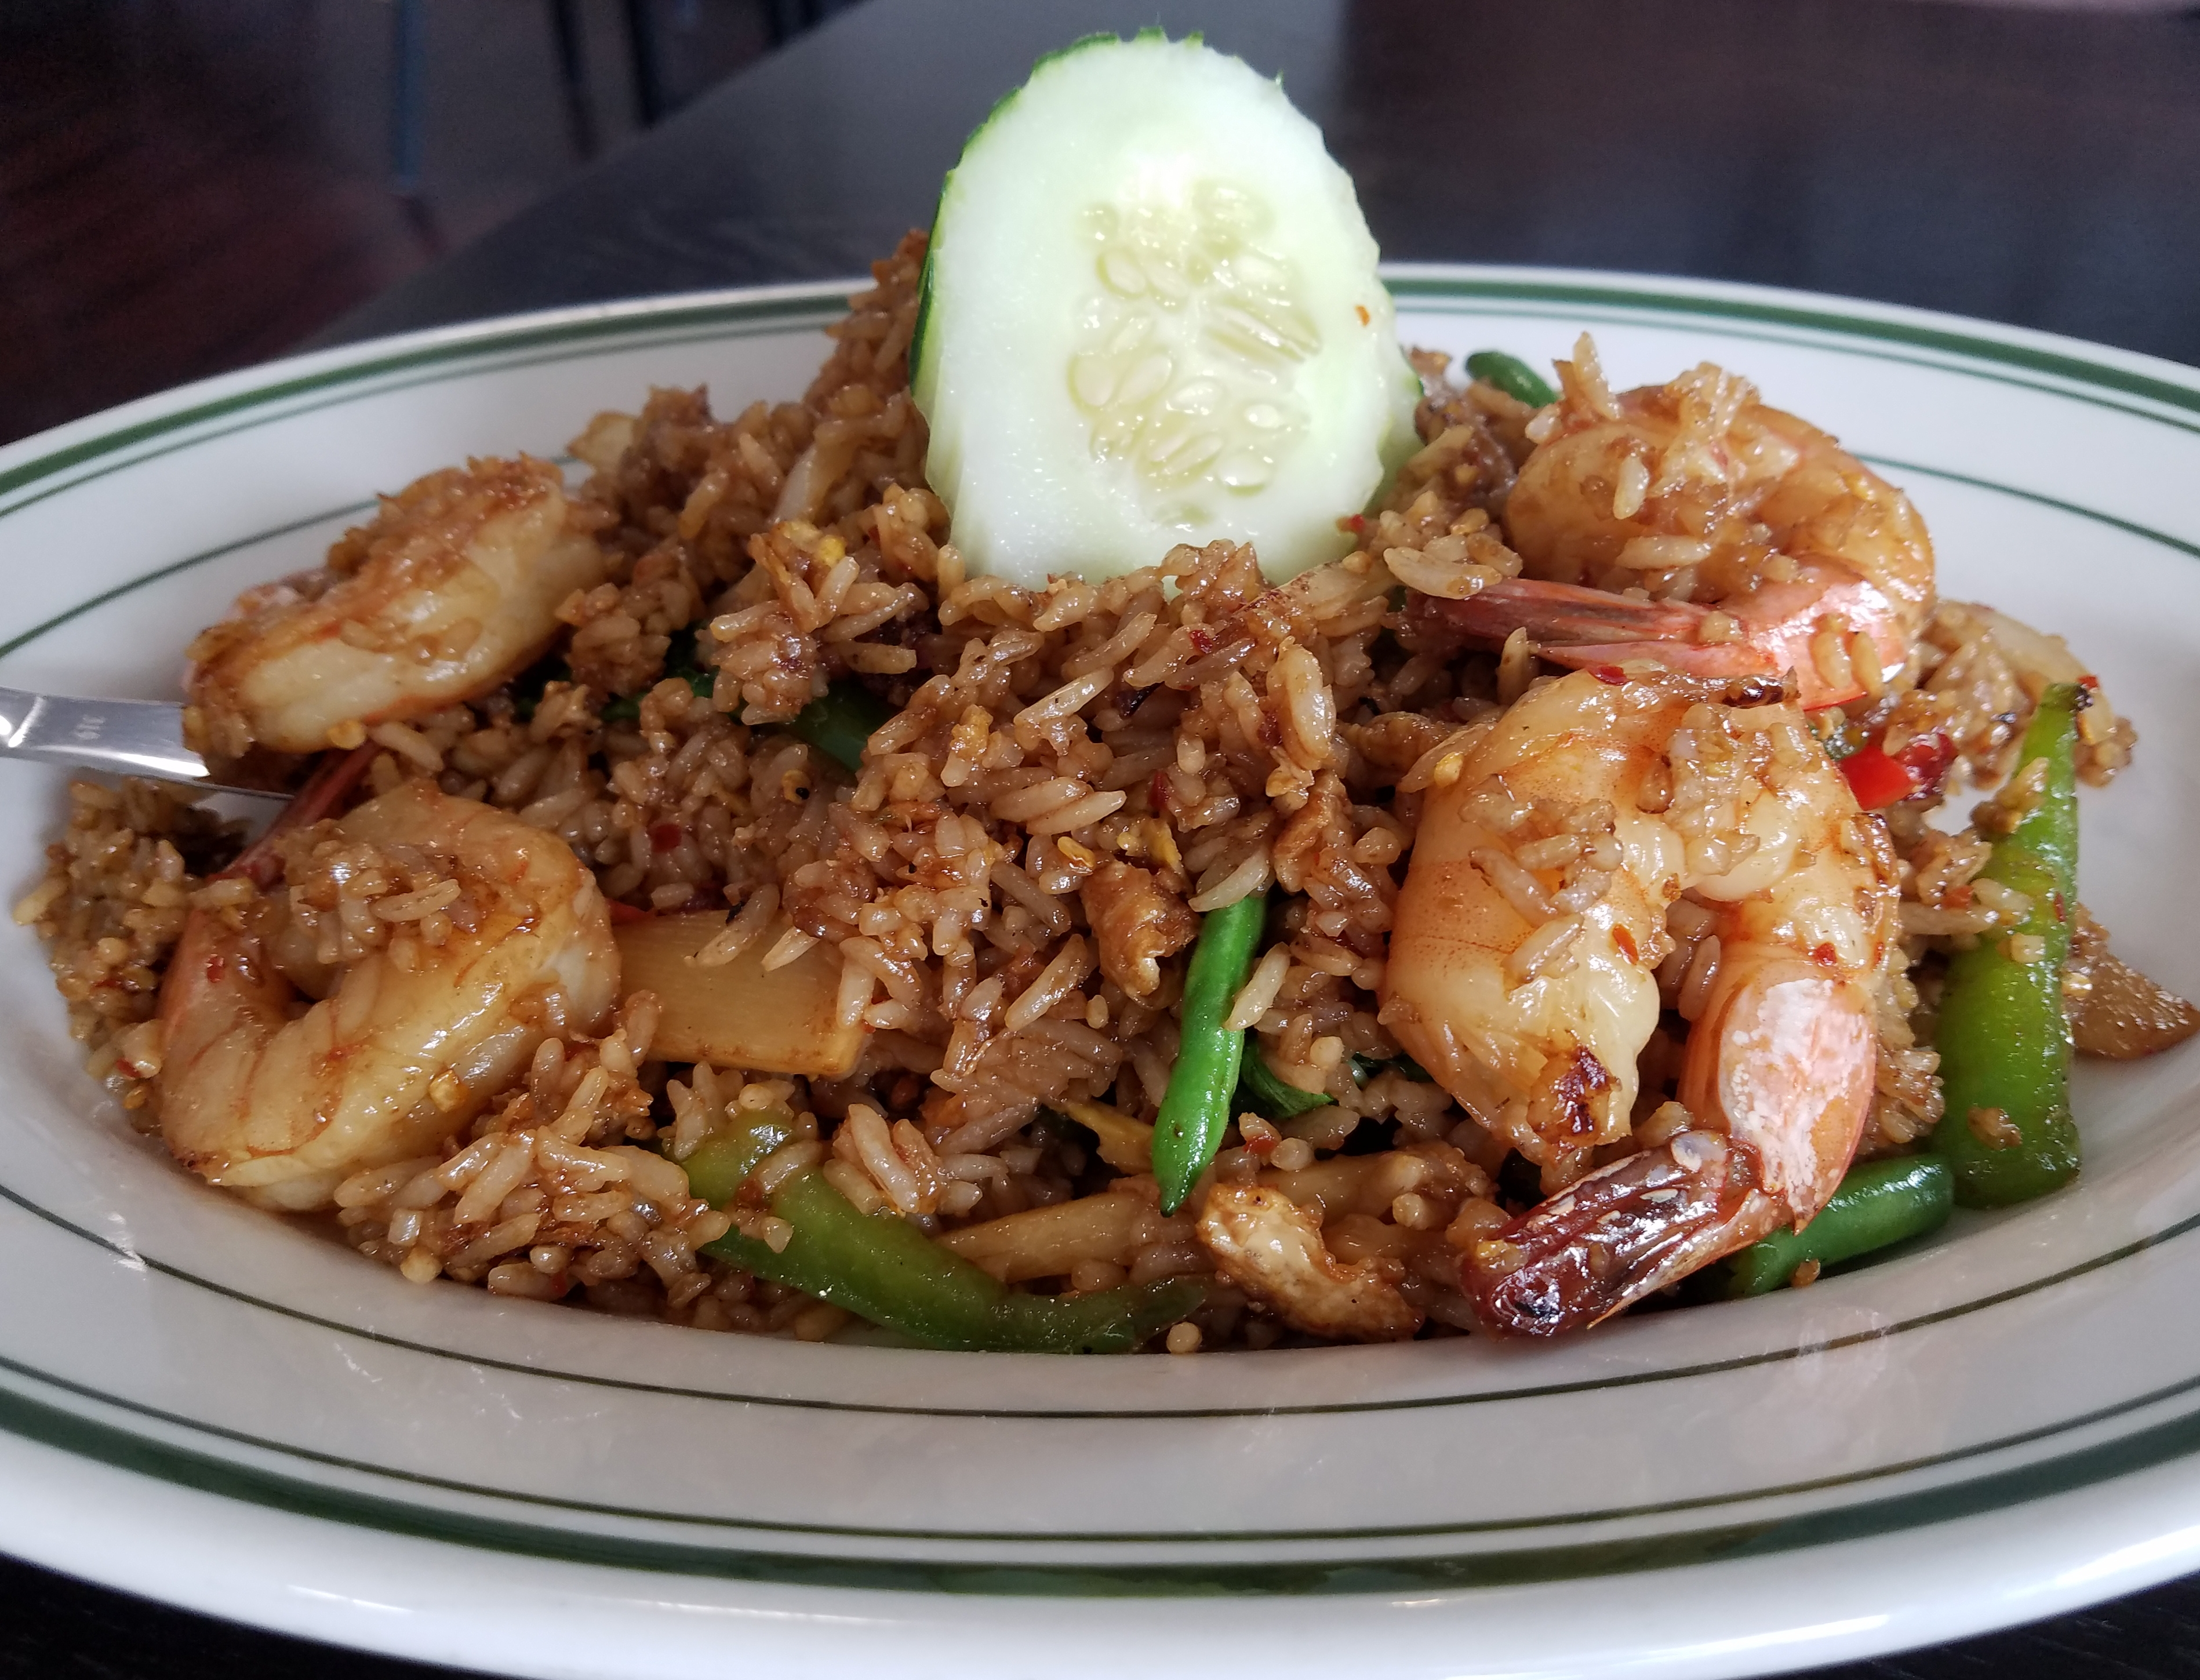 Spicy Fried Rice With Shrimp At Celadon Thai